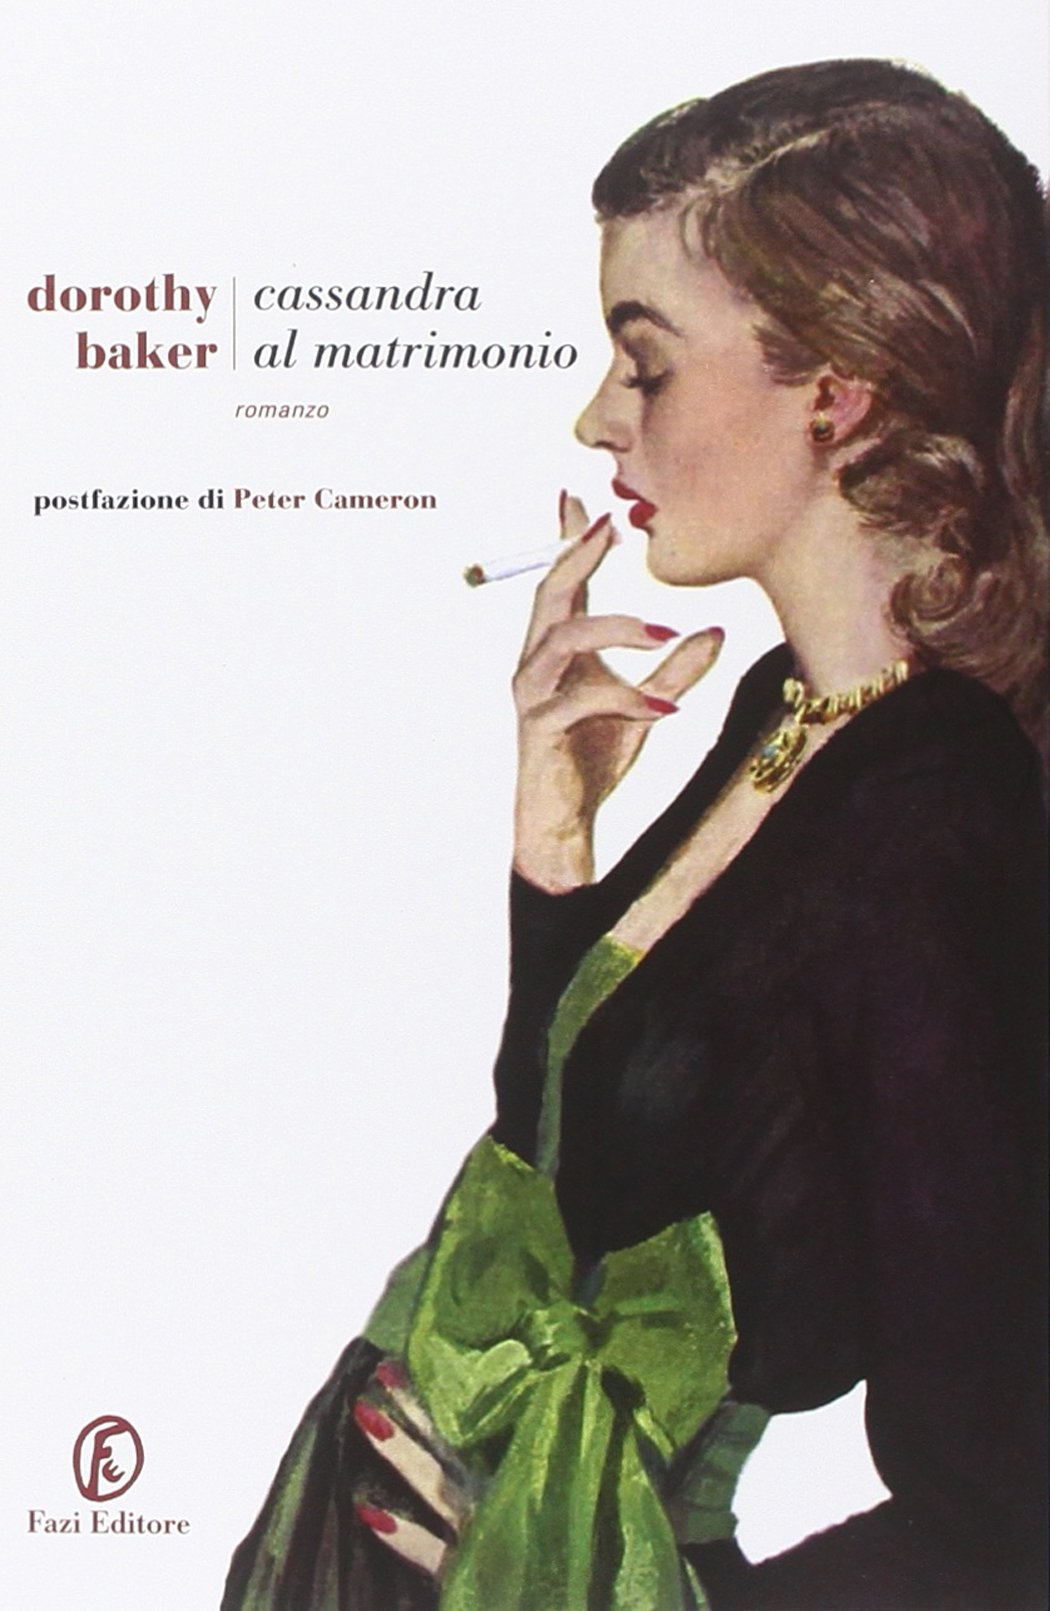 http://geekybookers.blogspot.it/2014/11/recensione-cassandra-al-matrimonio-di.hml